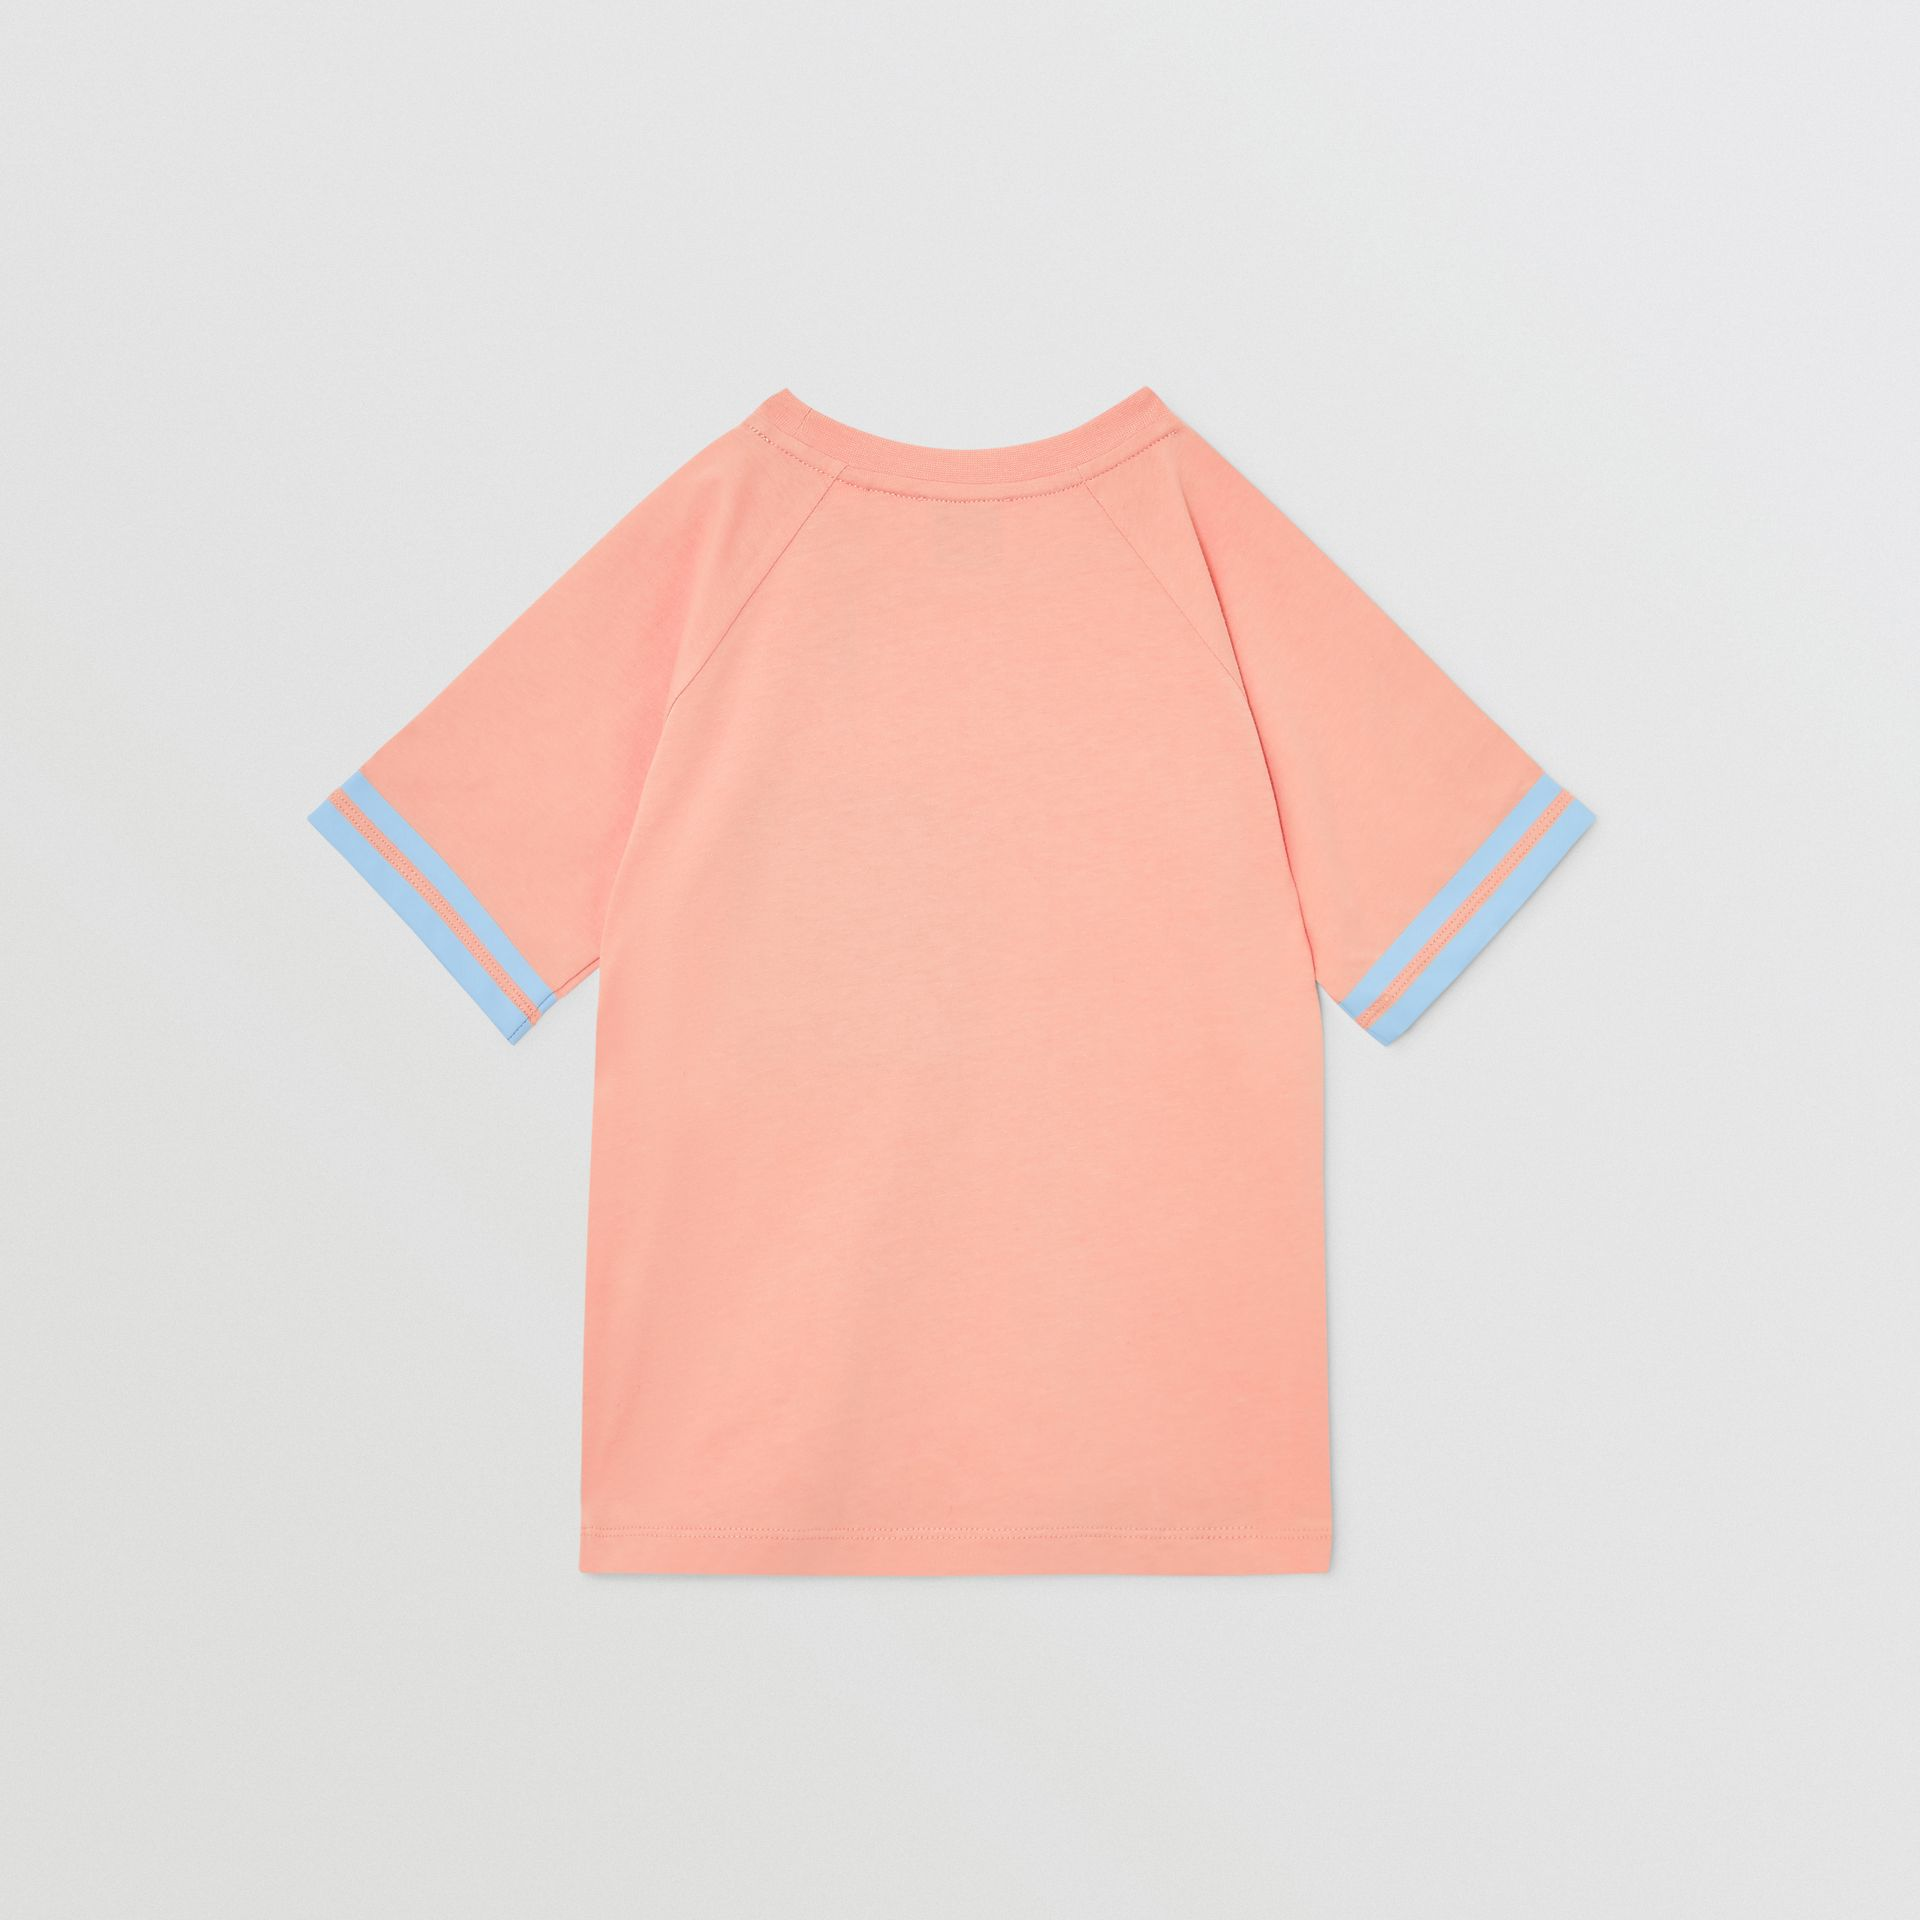 Tape Detail Location Print Cotton T-shirt in Peach | Burberry - gallery image 3